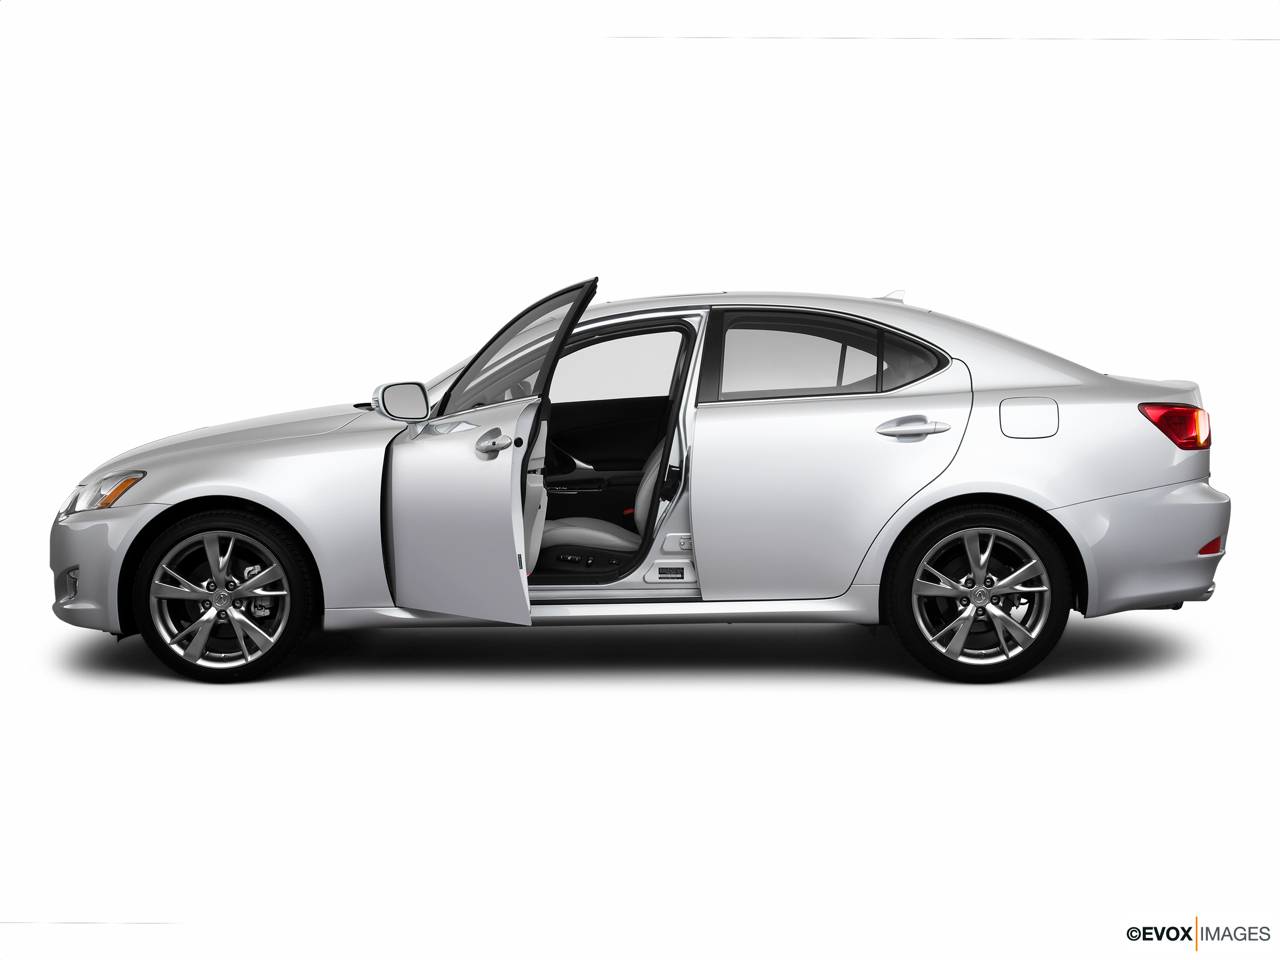 2010 Lexus IS 250 IS250 Driver's side profile with drivers side door open.